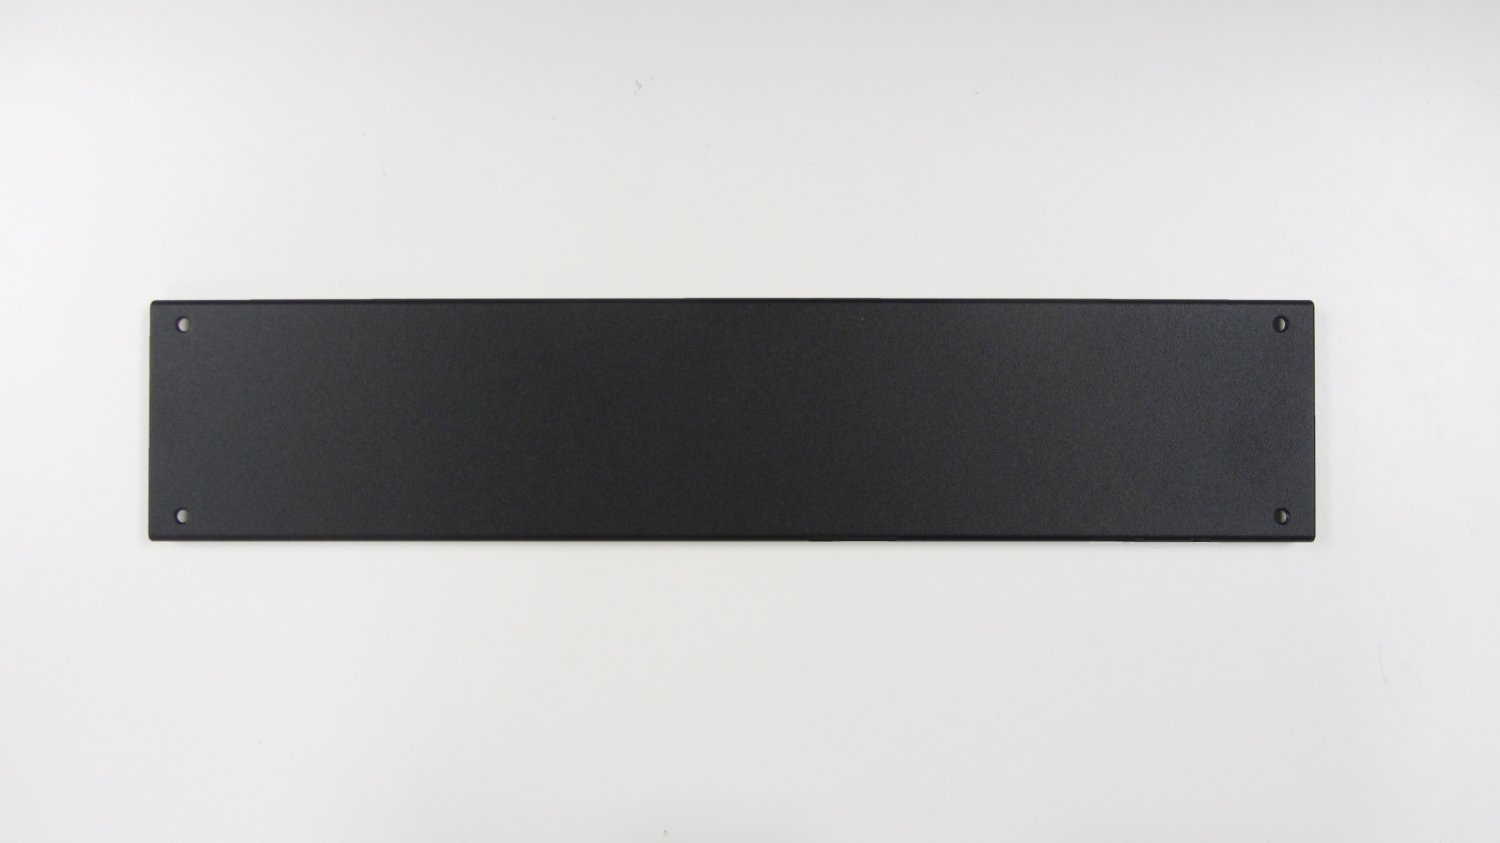 Hammond Front/Rear Aluminum Panel for RMCS/RMCV Series, 2U,Black Textured, RMCP3